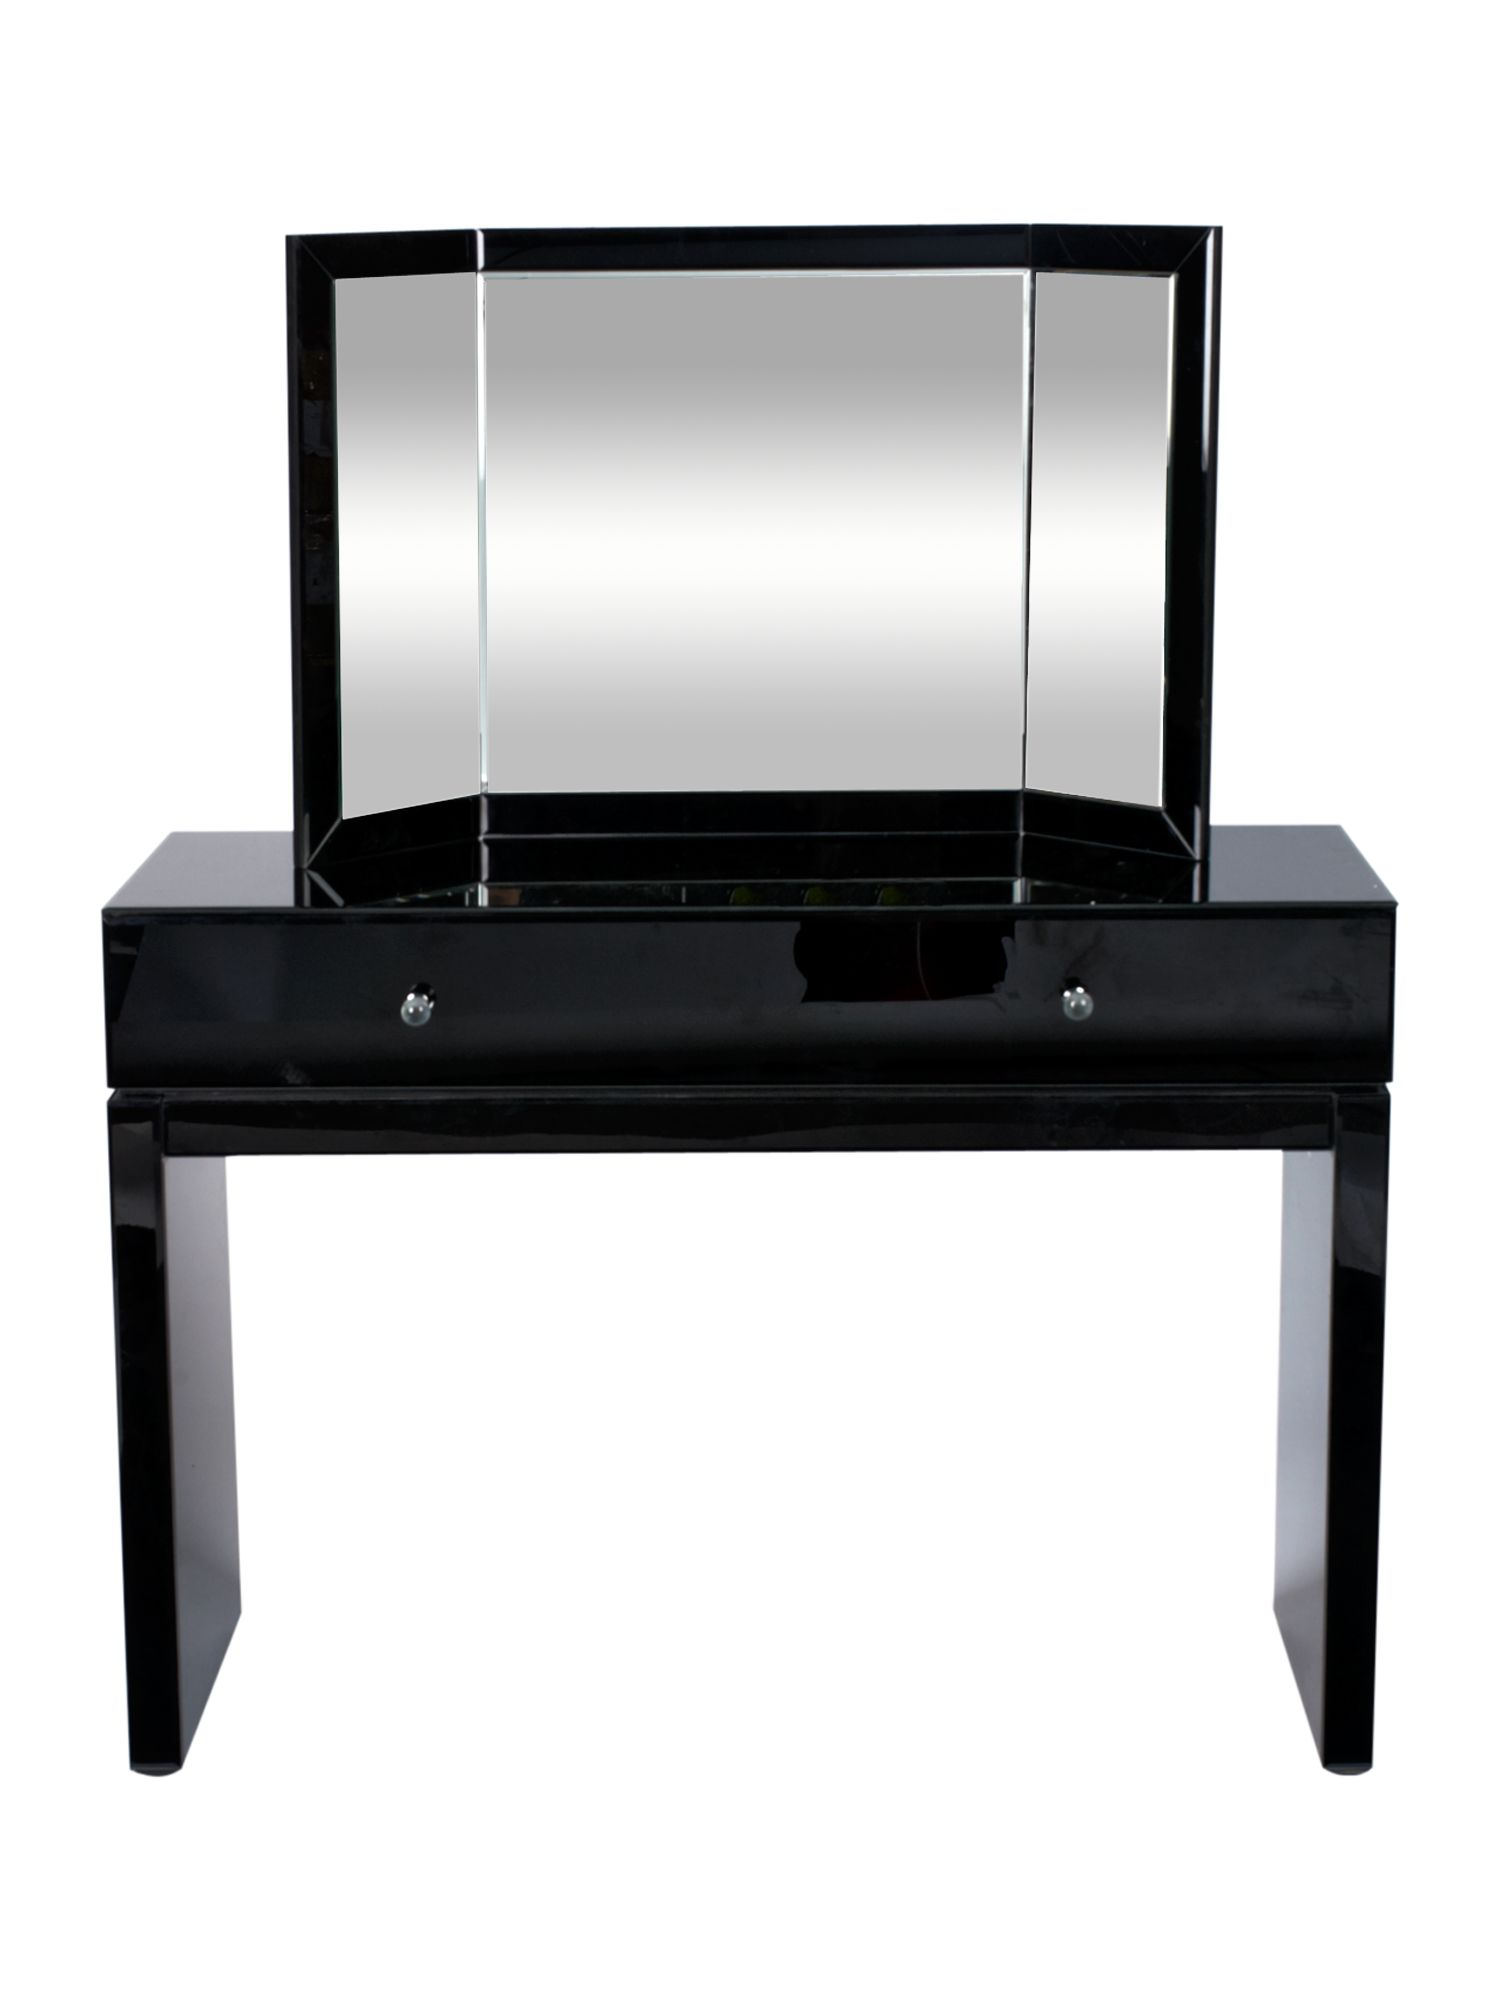 Pied a terre kelly dressing table and mirror black glass for 90cm dressing table